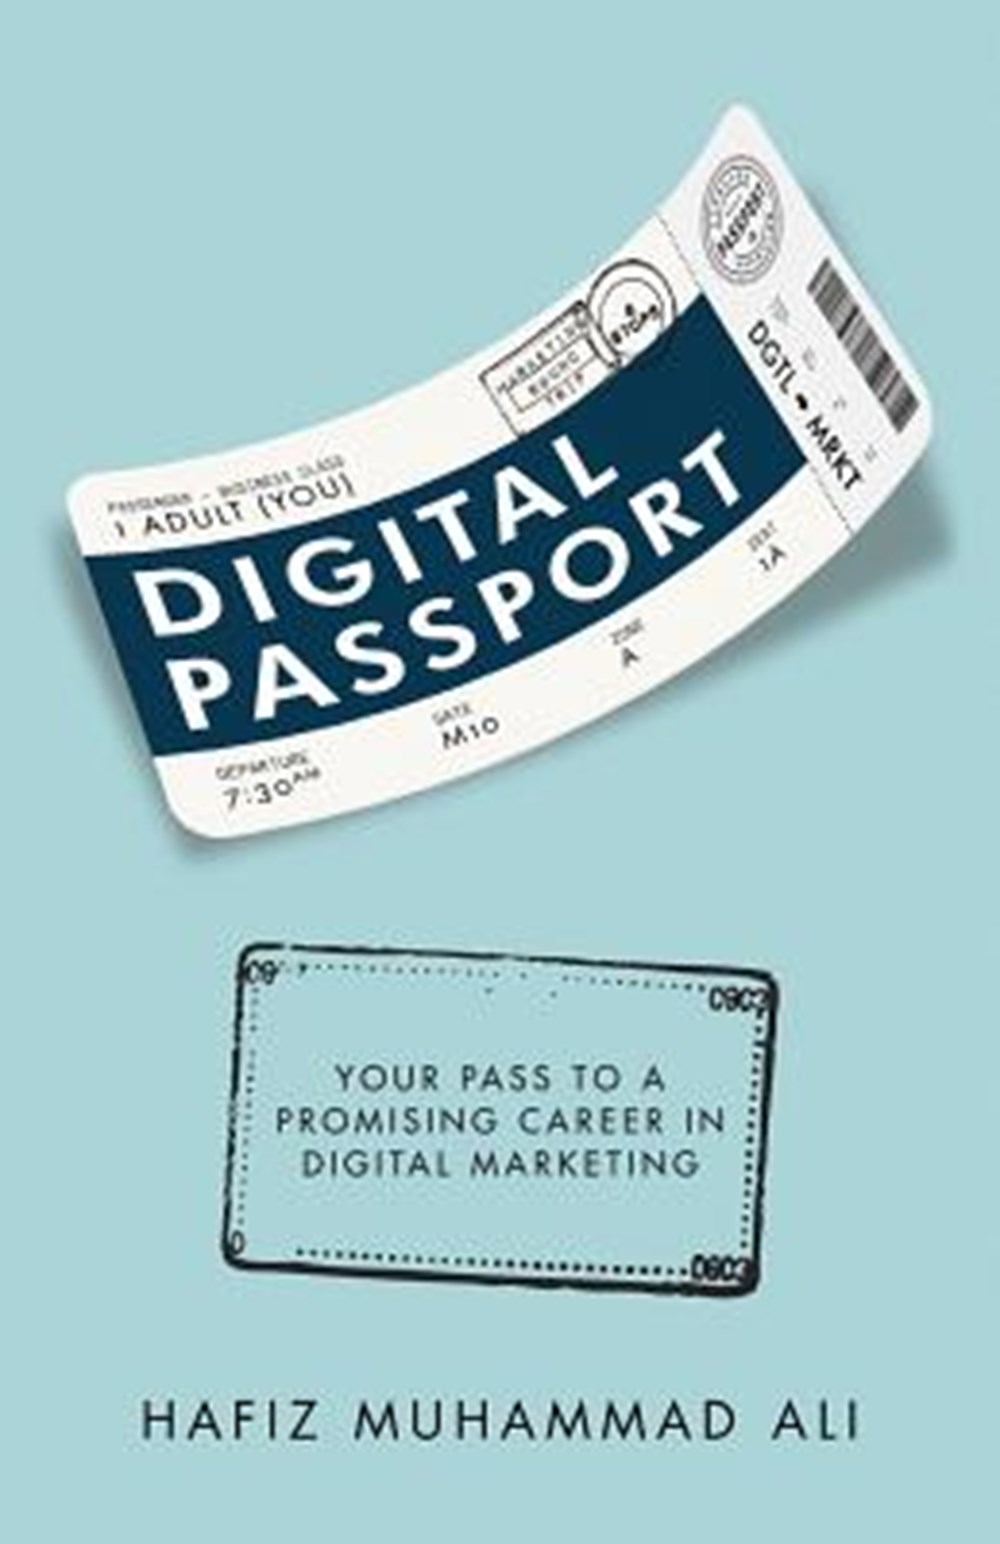 Digital Passport Your Pass to a Promising Career in Digital Marketing